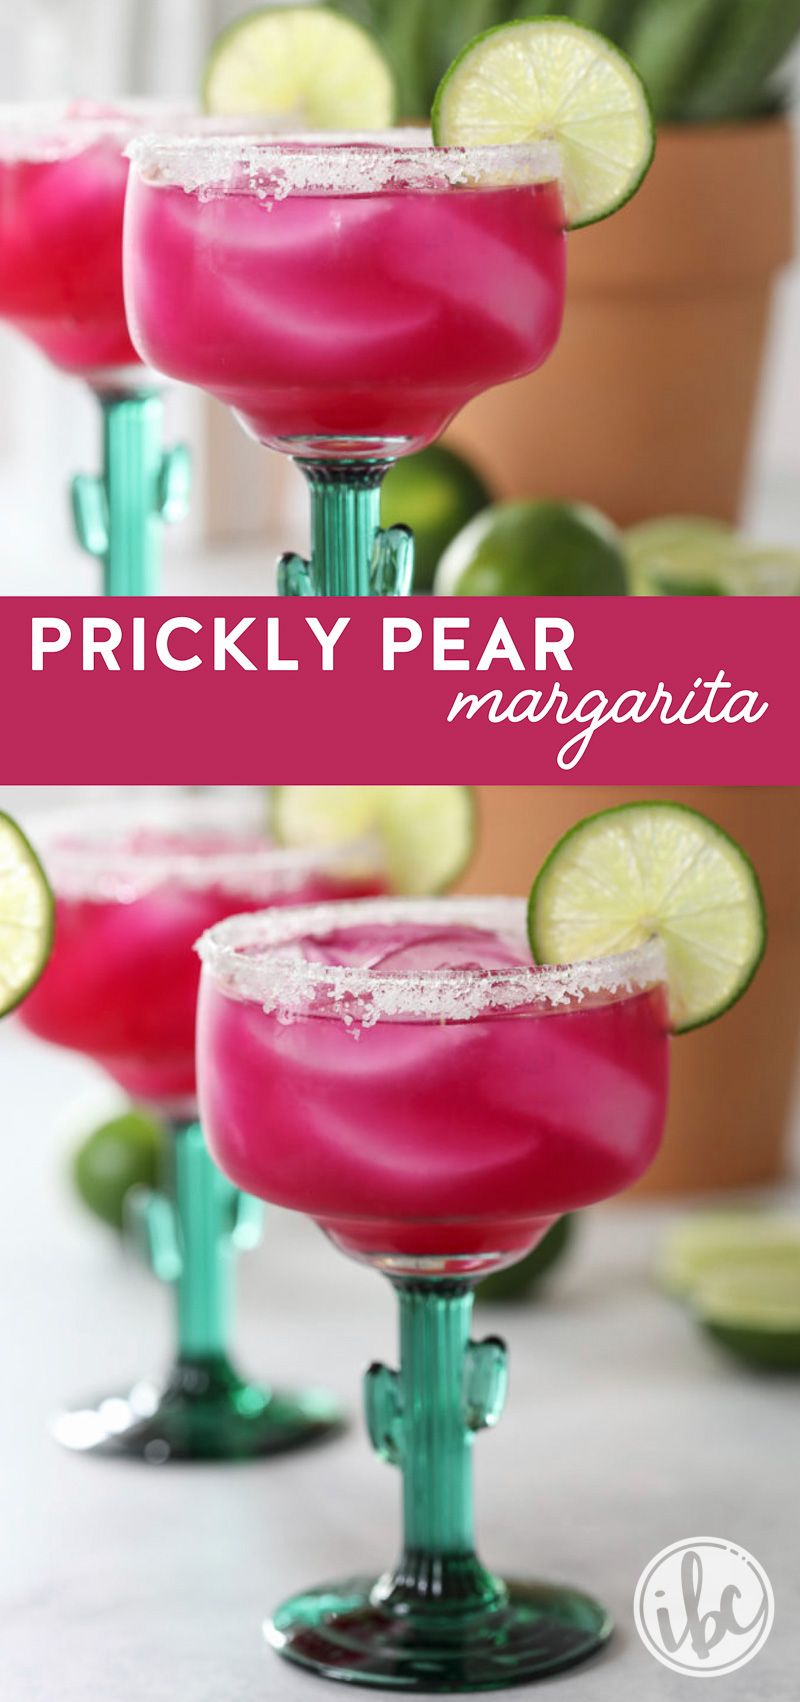 Bam This Prickly Pear Margarita Is A Delicious And Fun As It Looks Cocktail Margarita Recipe Prickly P Pear Drinks Prickly Pear Margarita Pear Cocktails